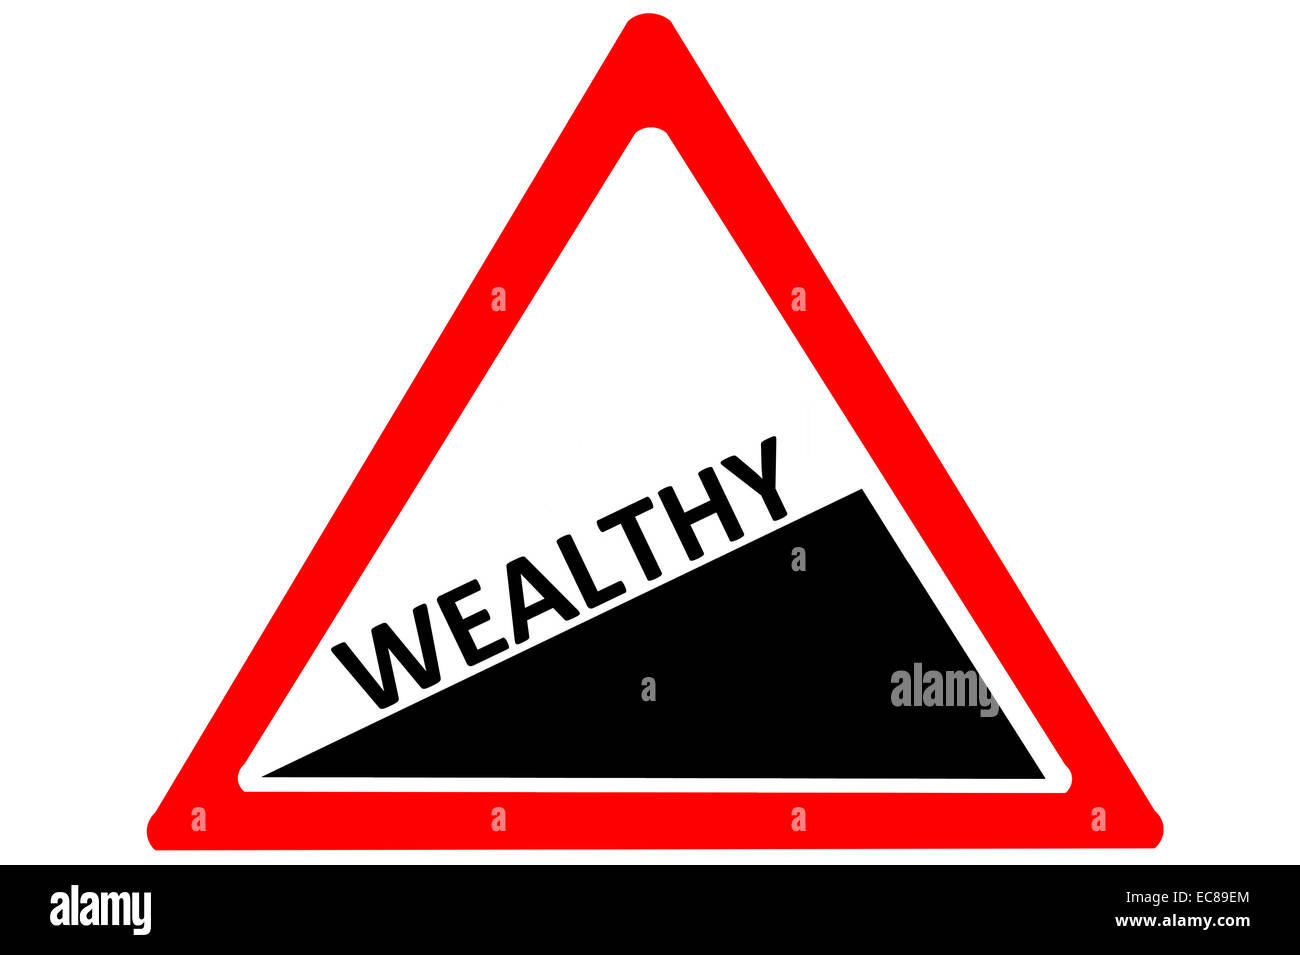 Wealthy increasing warning road sign isolated on pure white background - Stock Image